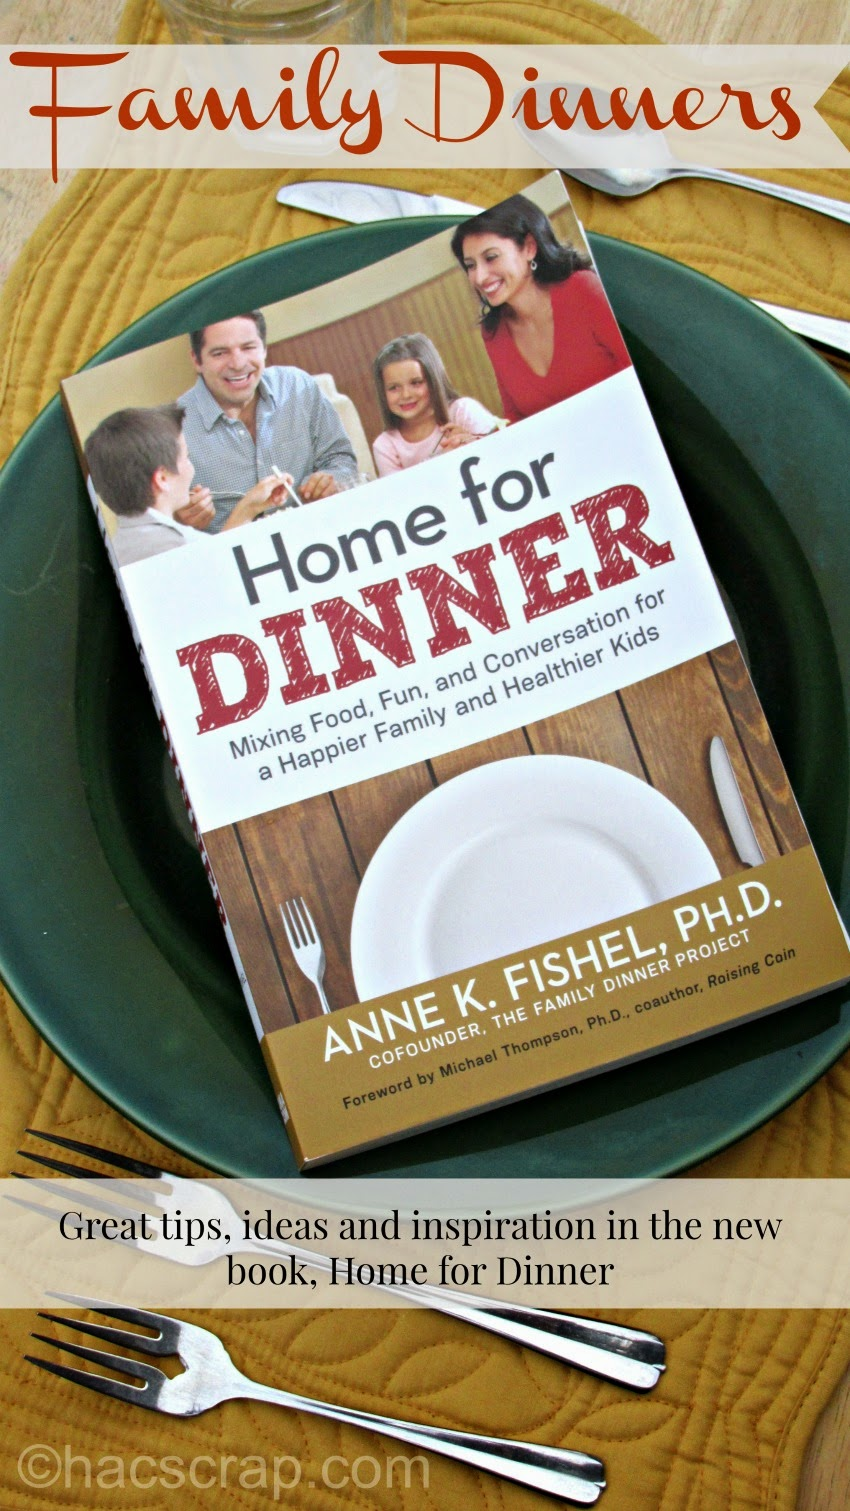 Ideas for Recharging Your Family Dinners from the new Book, Home for Dinner by Anne Fishel